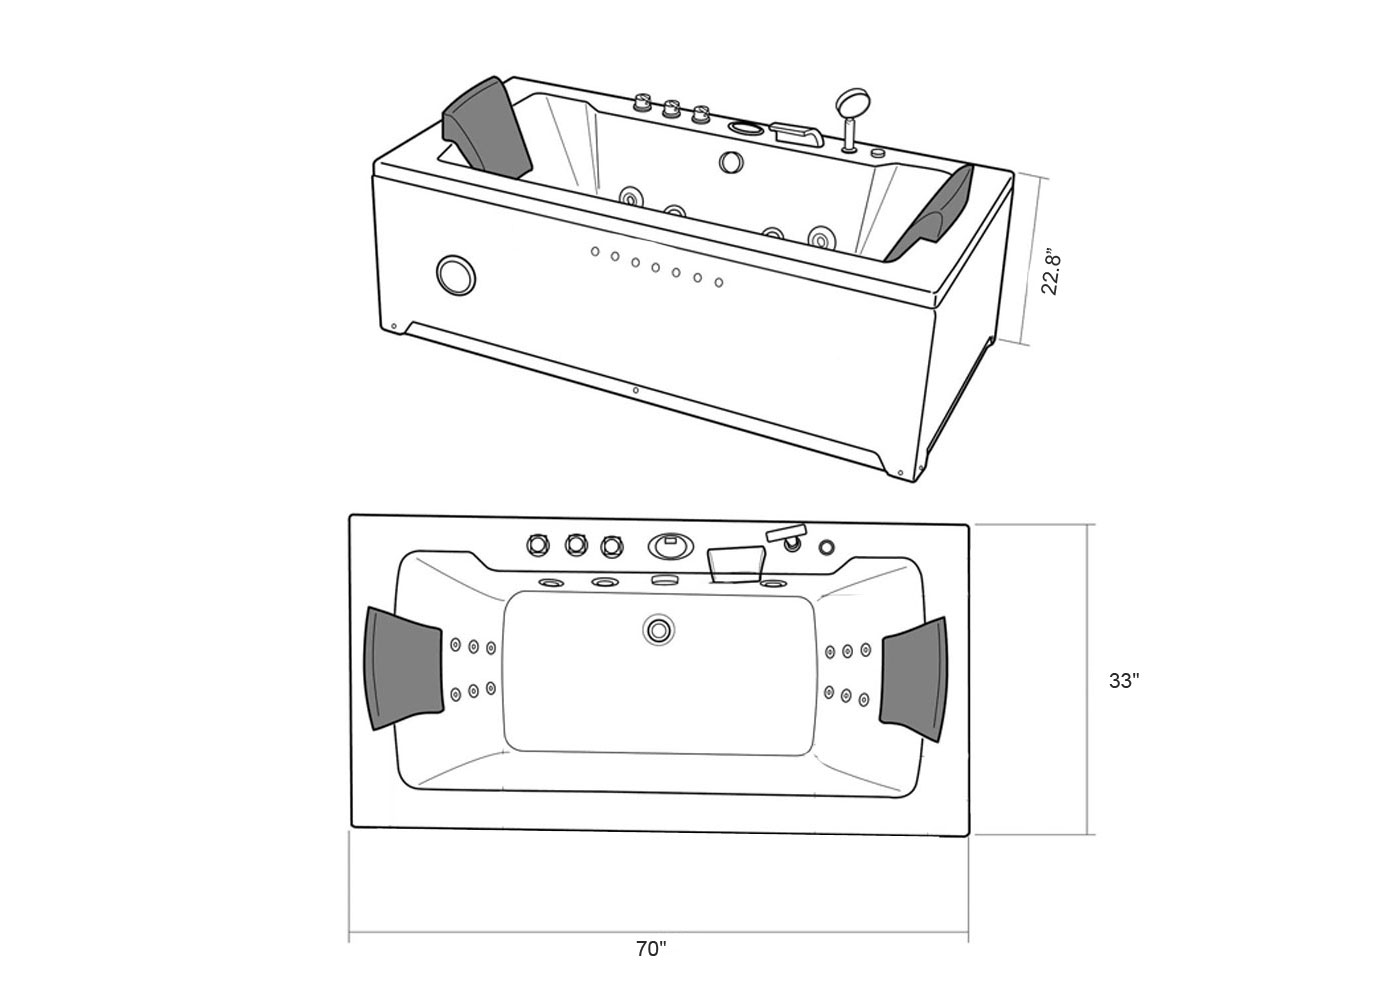 Whirlpool Bathtub 70 X 33 Black Hot Tub Double Pump